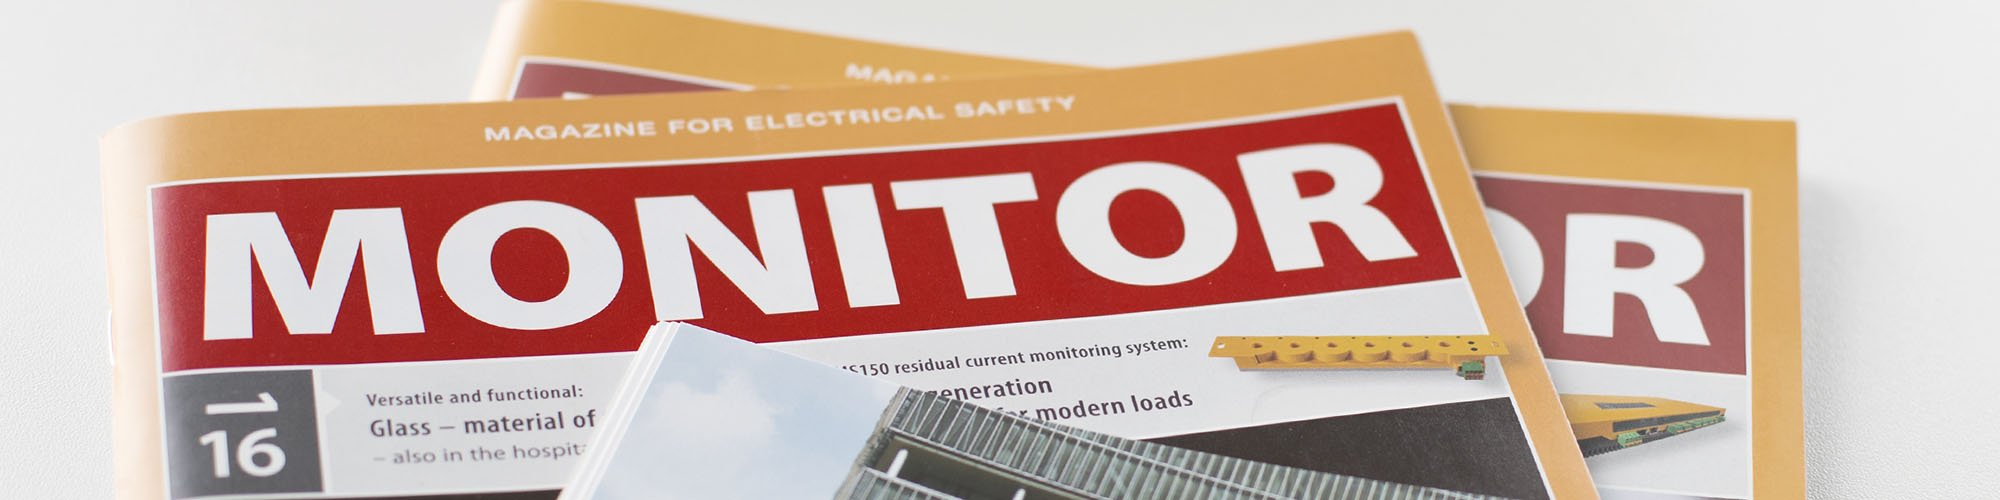 MONITOR: The magazin for electrical safety